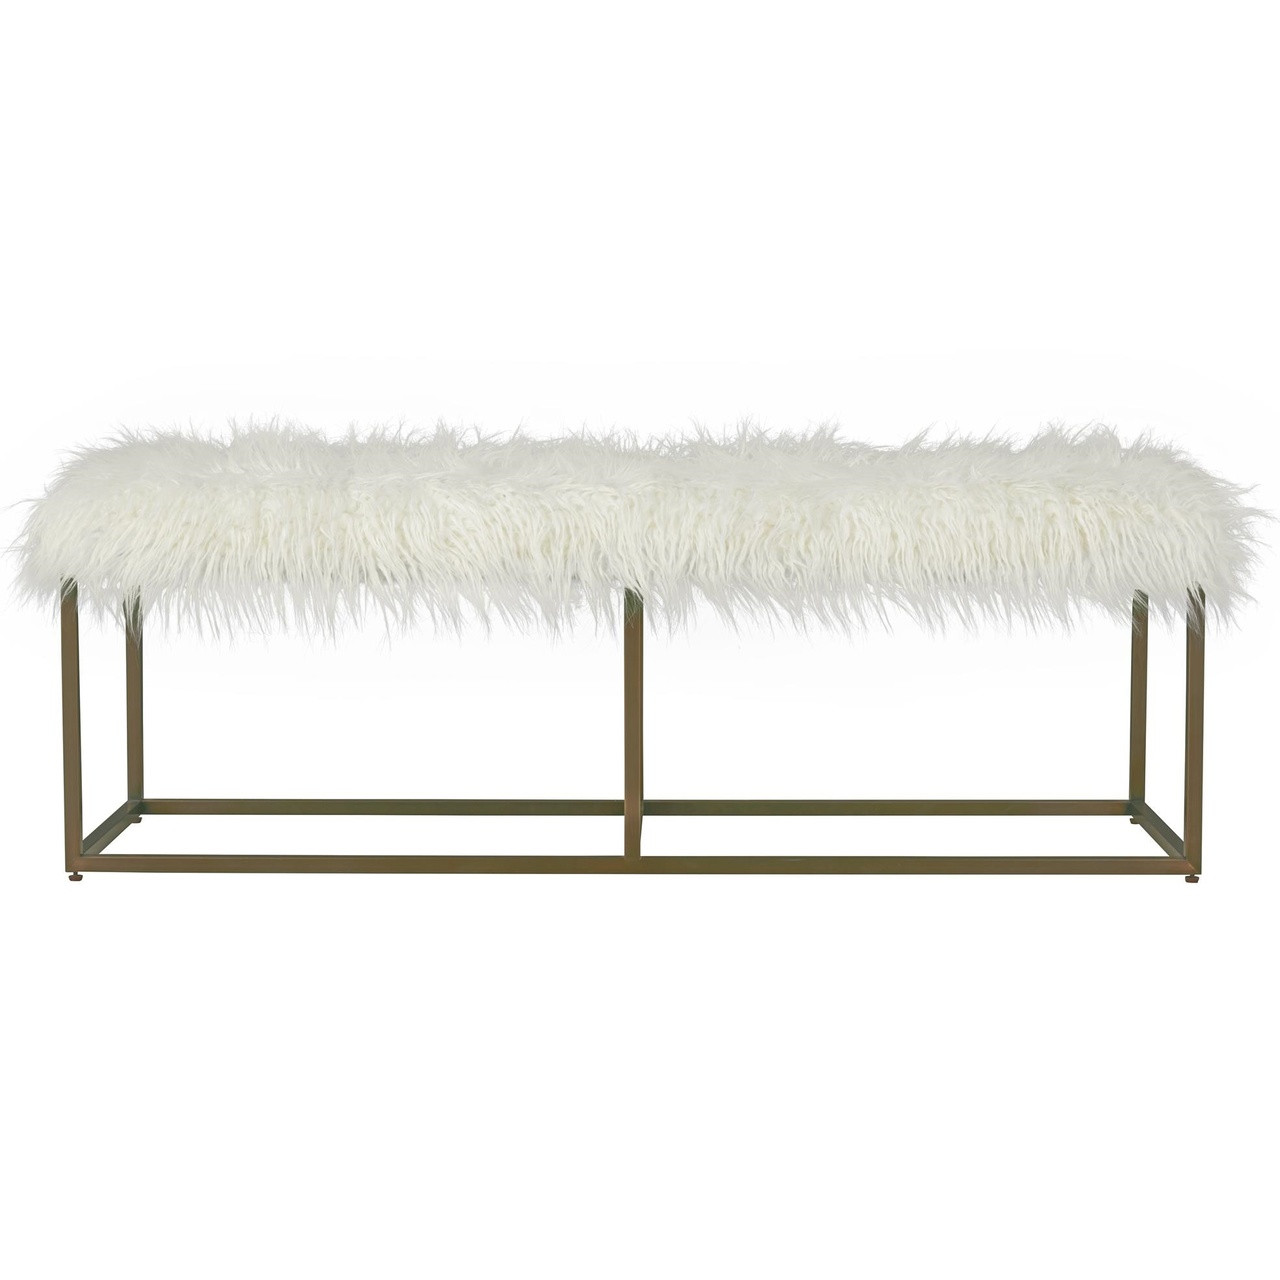 Brilliant Modern Hollywood Regency White Alpaca Fur Bench Squirreltailoven Fun Painted Chair Ideas Images Squirreltailovenorg